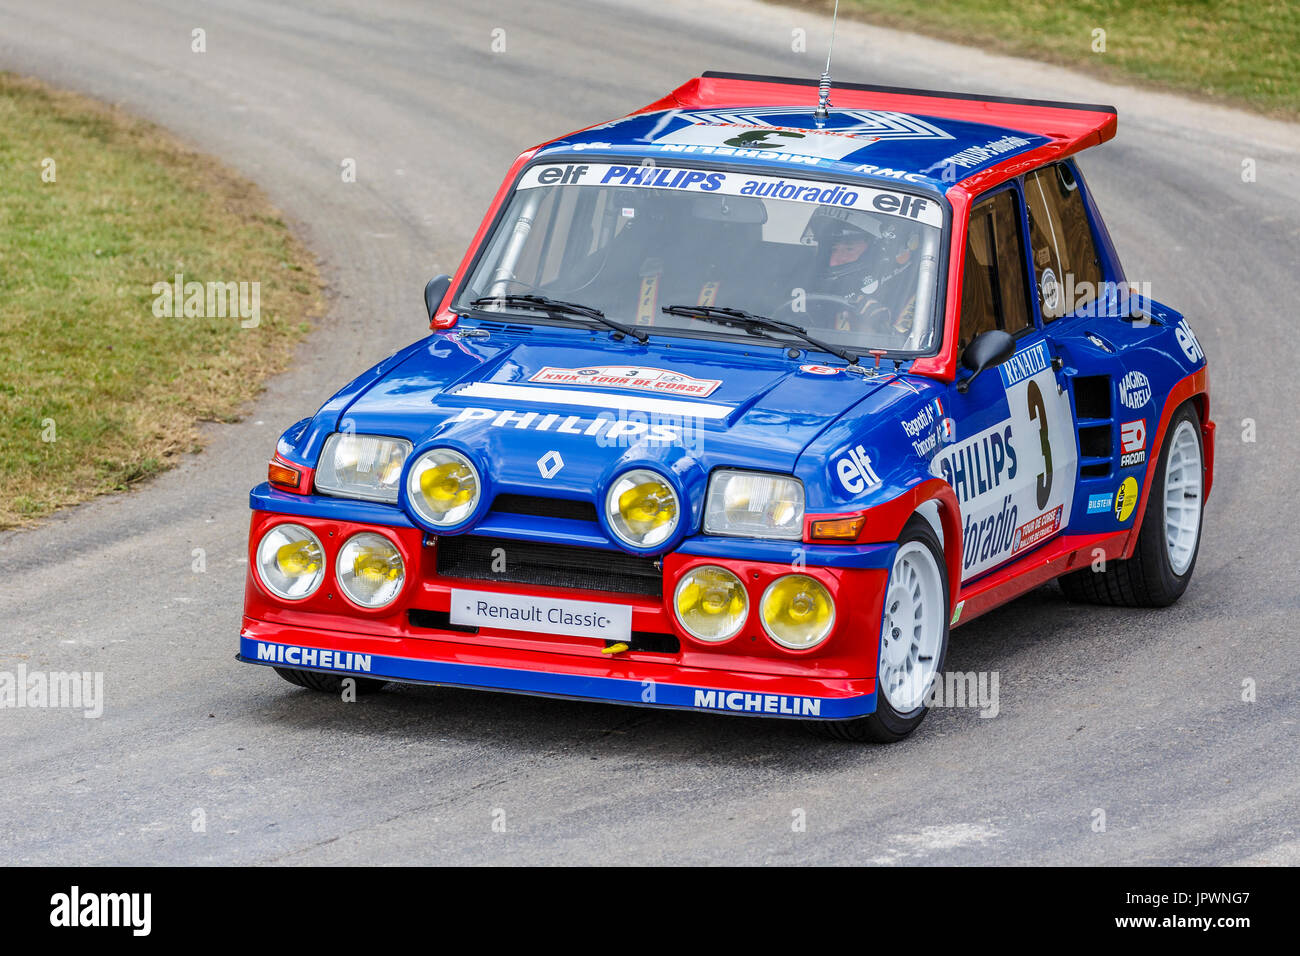 1985 renault 5 maxi turbo rallye auto mit fahrer jean ragnotti auf die 2017 goodwood festival of. Black Bedroom Furniture Sets. Home Design Ideas